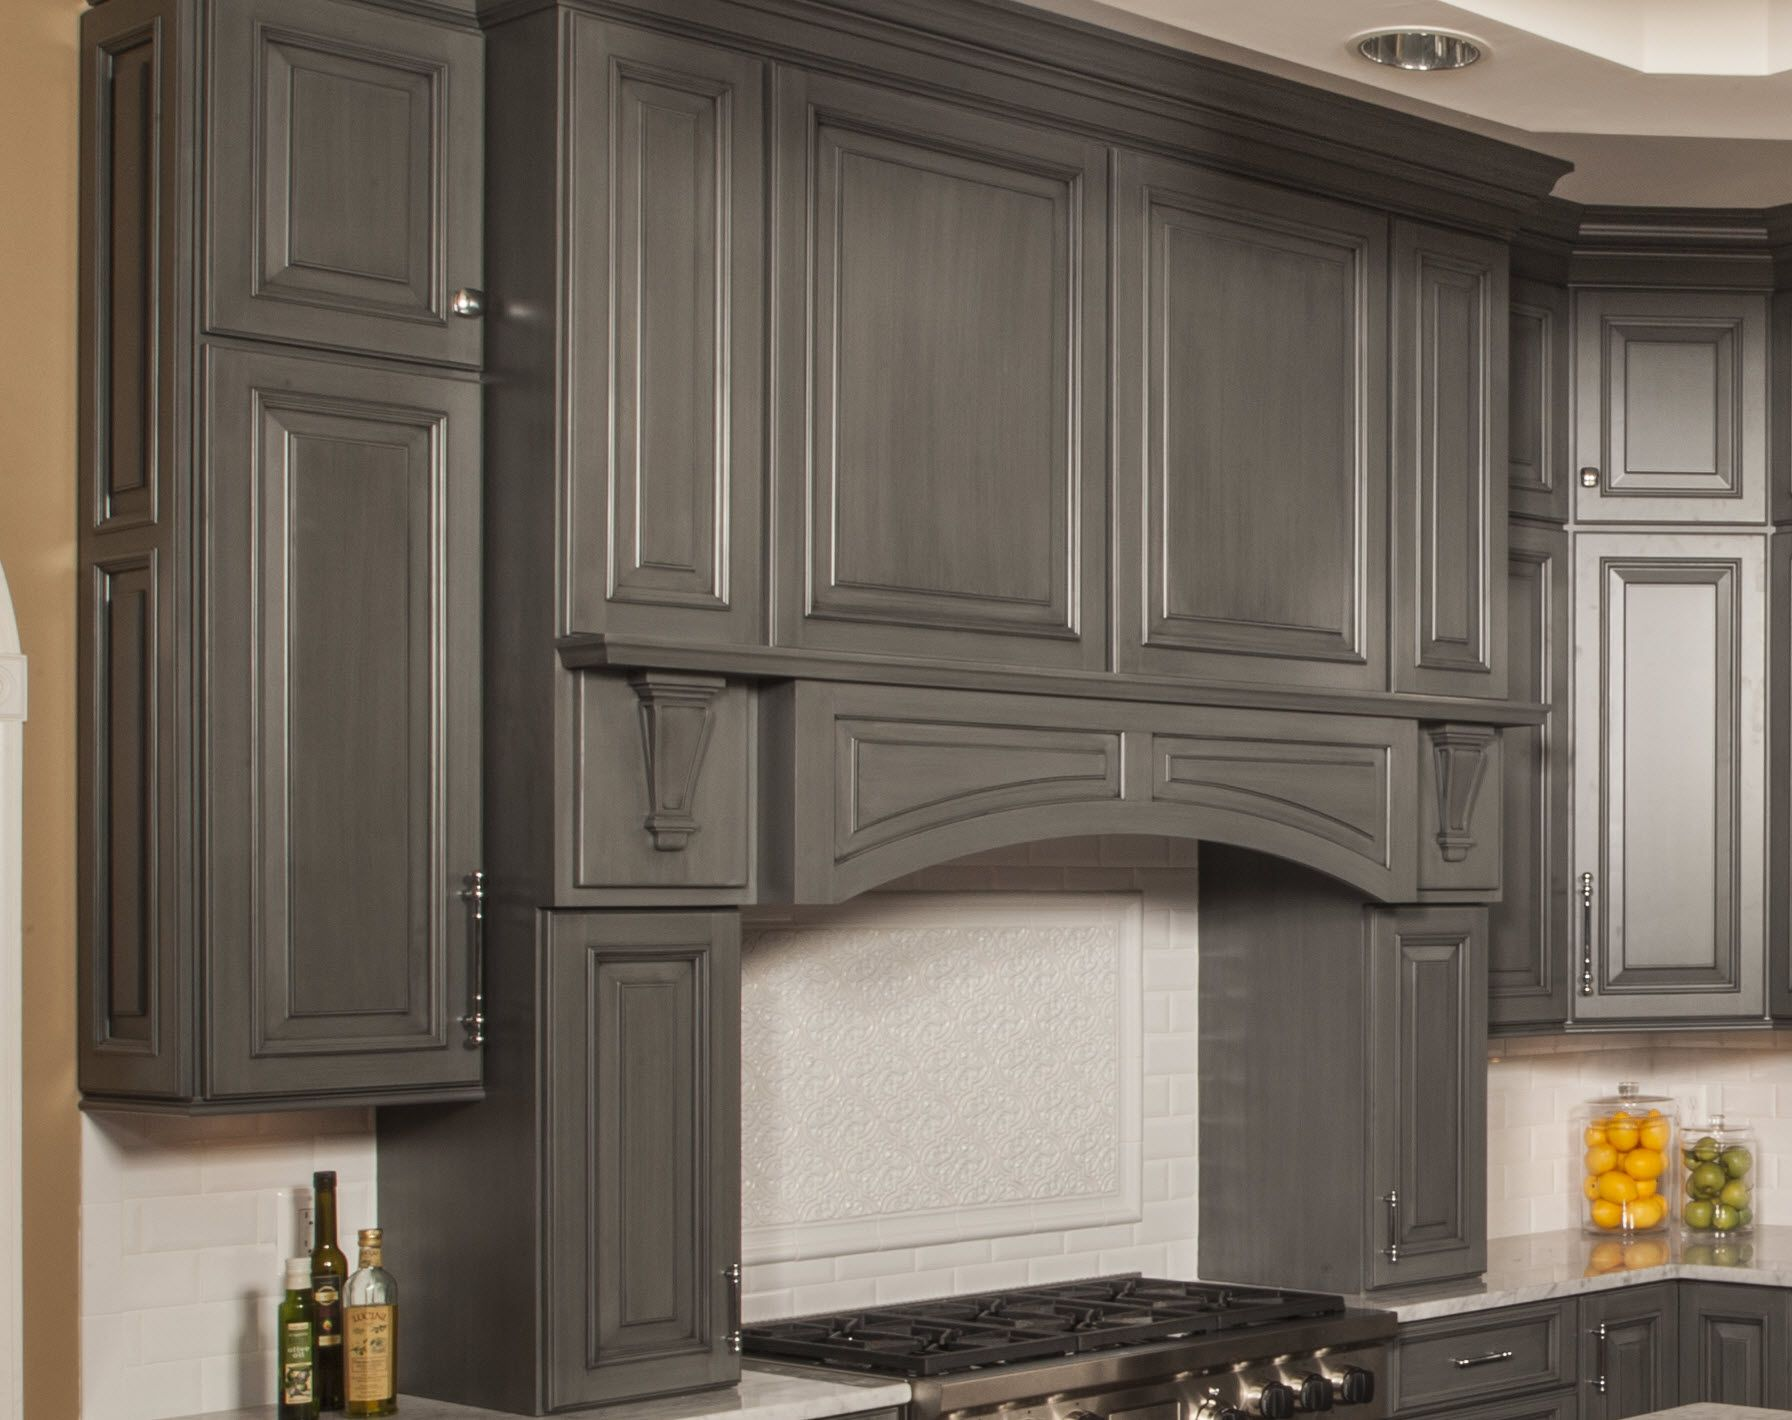 Holiday Kitchen Cabinets